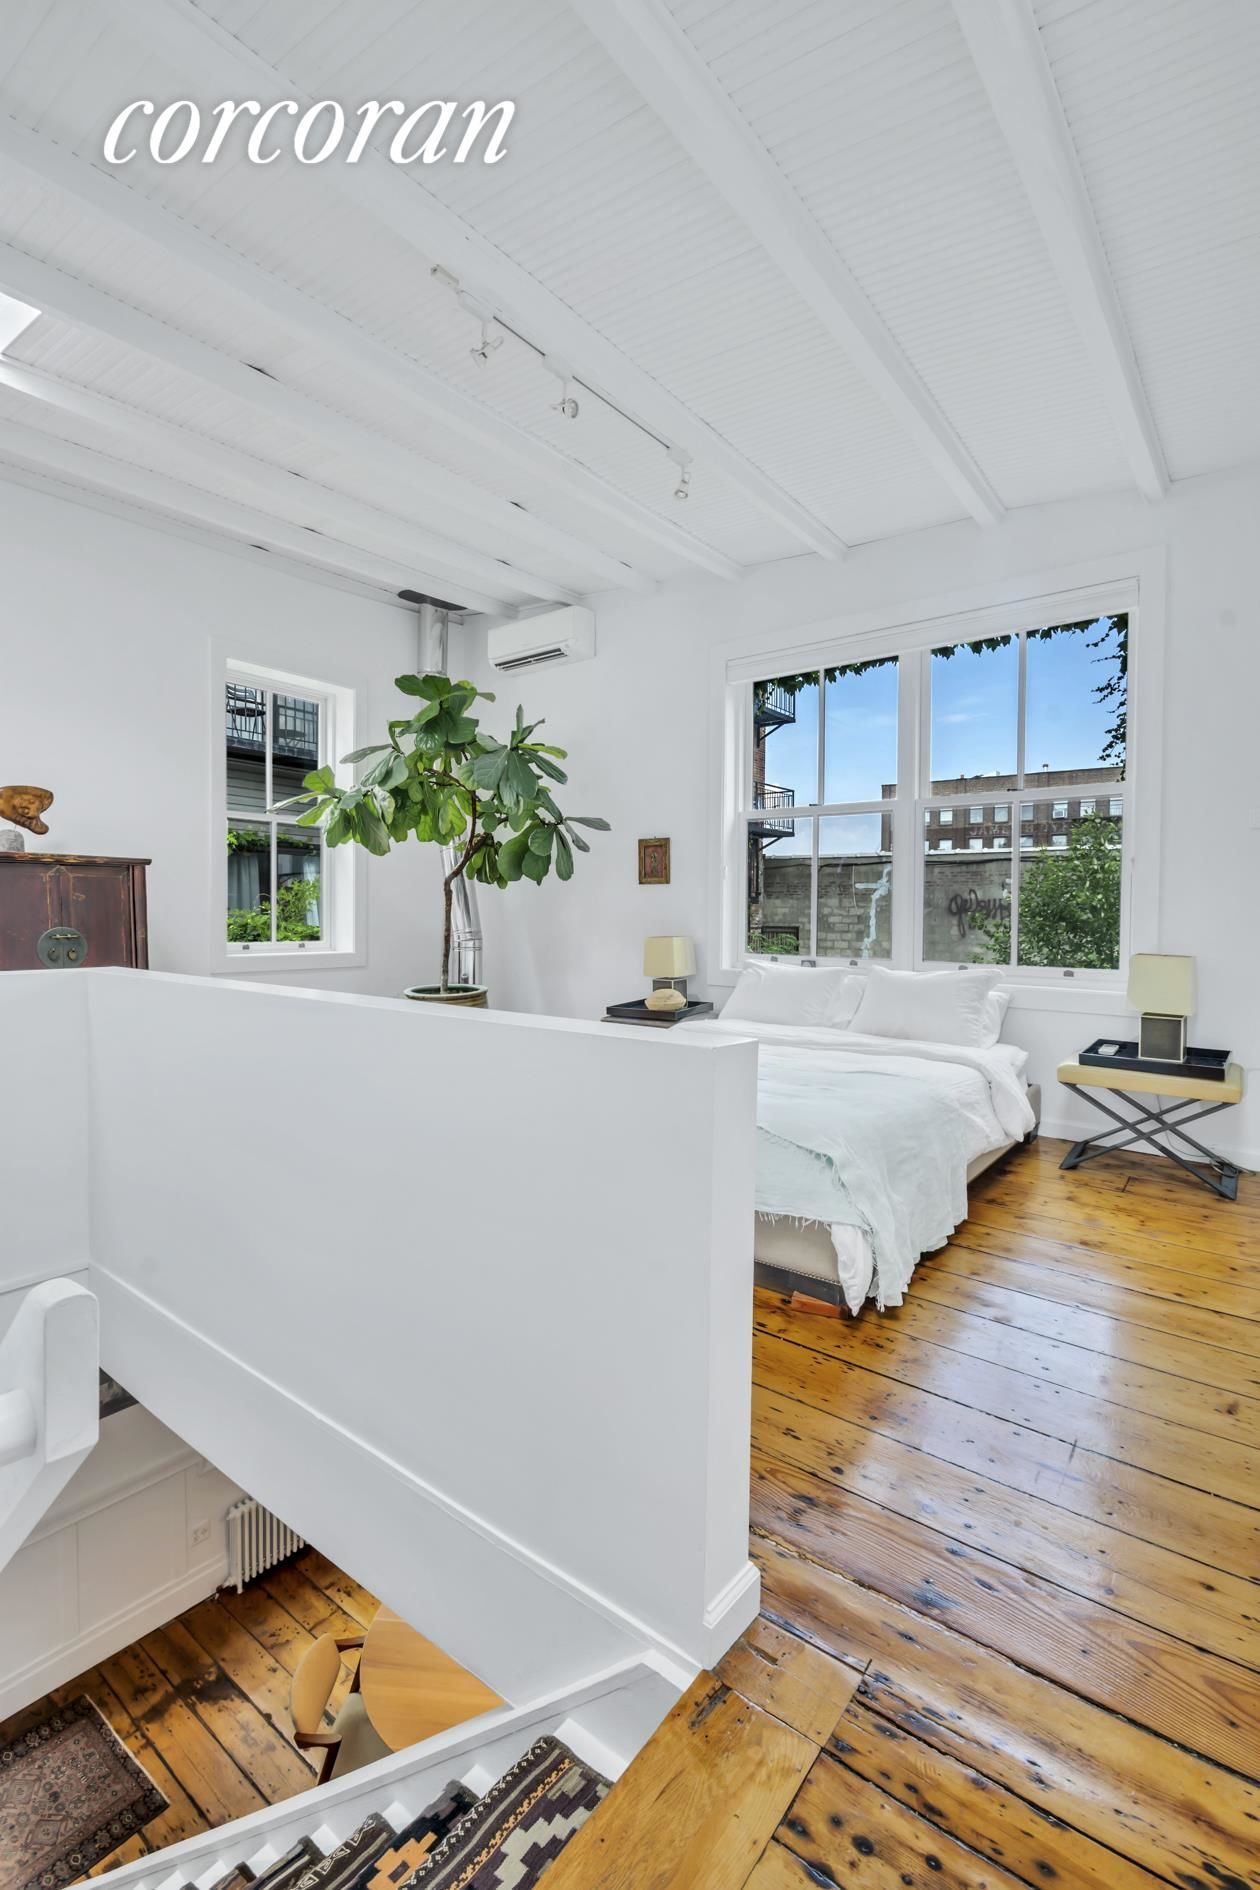 561 Union St Photo 9 - NYC-Real-Estate-668587